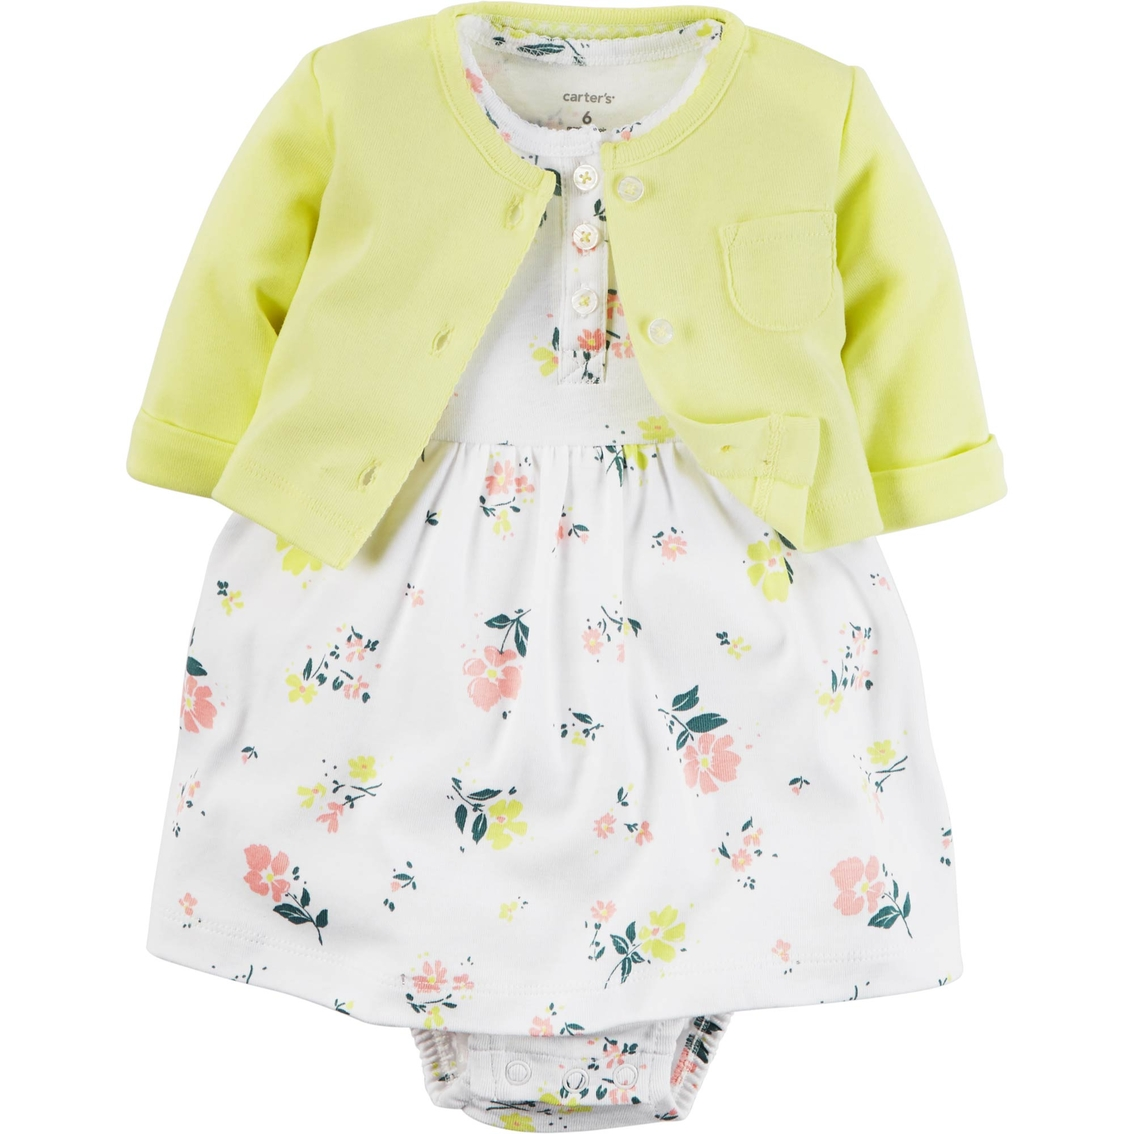 6ae72adb3 Carter's Infant Girls 2 pc. Yellow Floral Bodysuit Dress and Cardigan Set